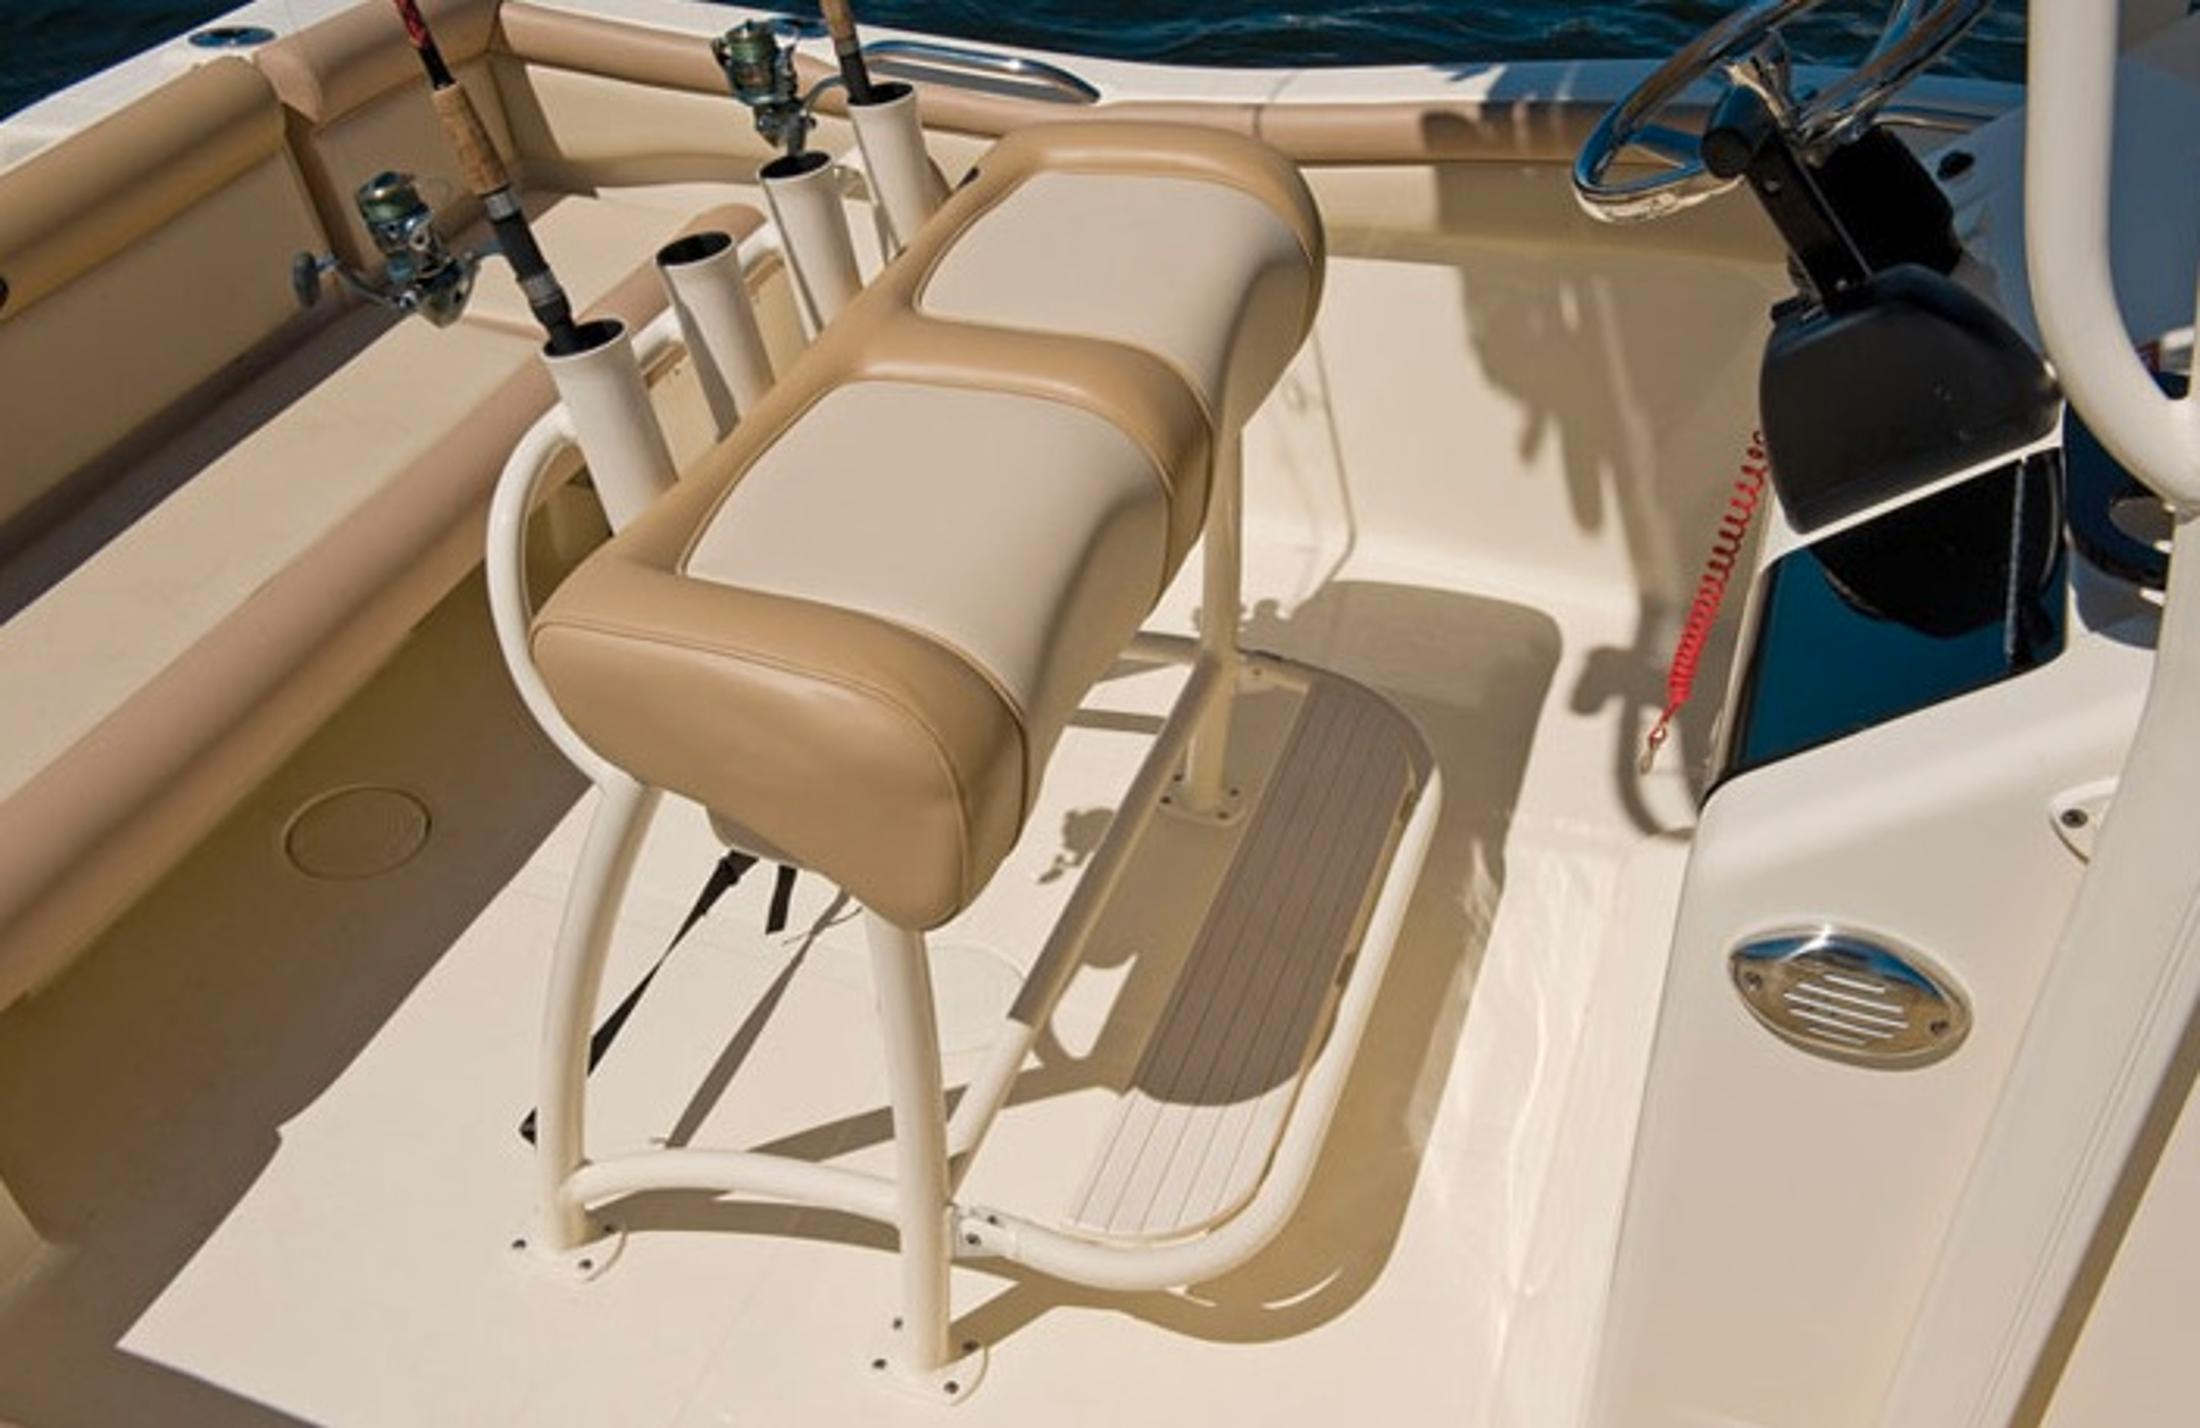 2016 Scout Boats 210 XSF in Bridgeport, New York